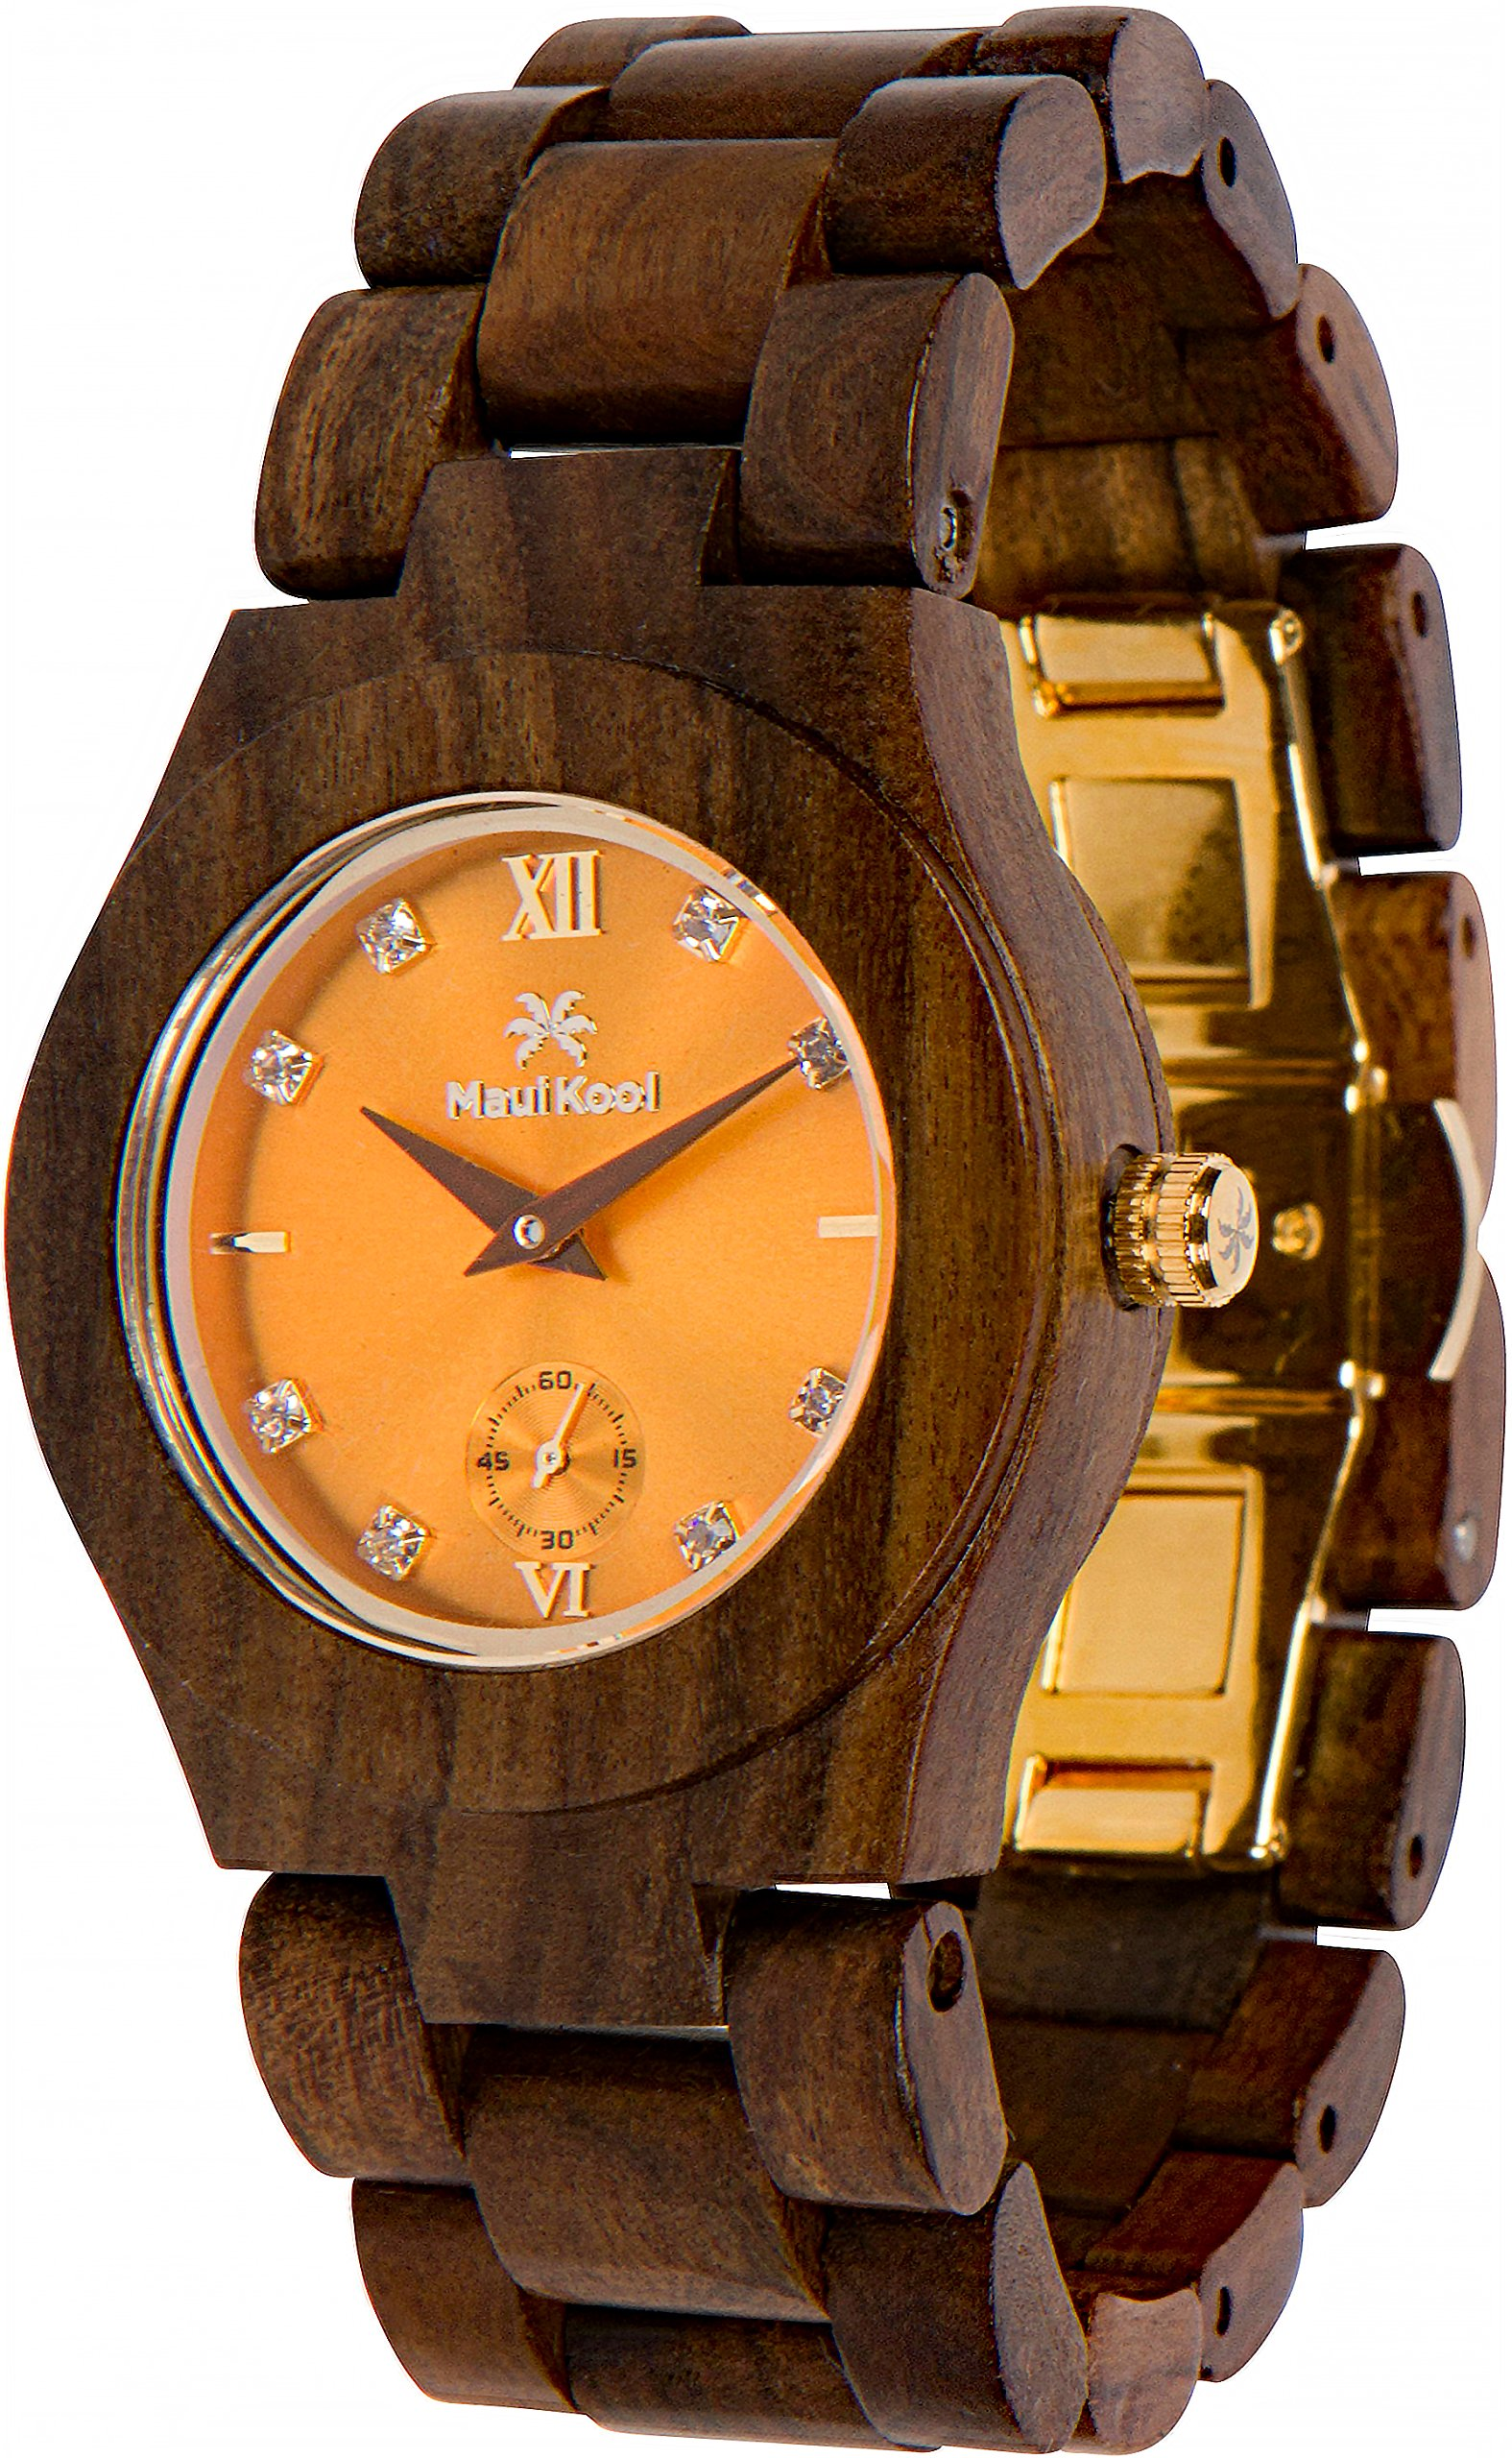 Maui Kool Wooden Watch Hana Collection For Women Analog Wood Watch Bamboo Gift Box (B7 - Sandalwood Orange)